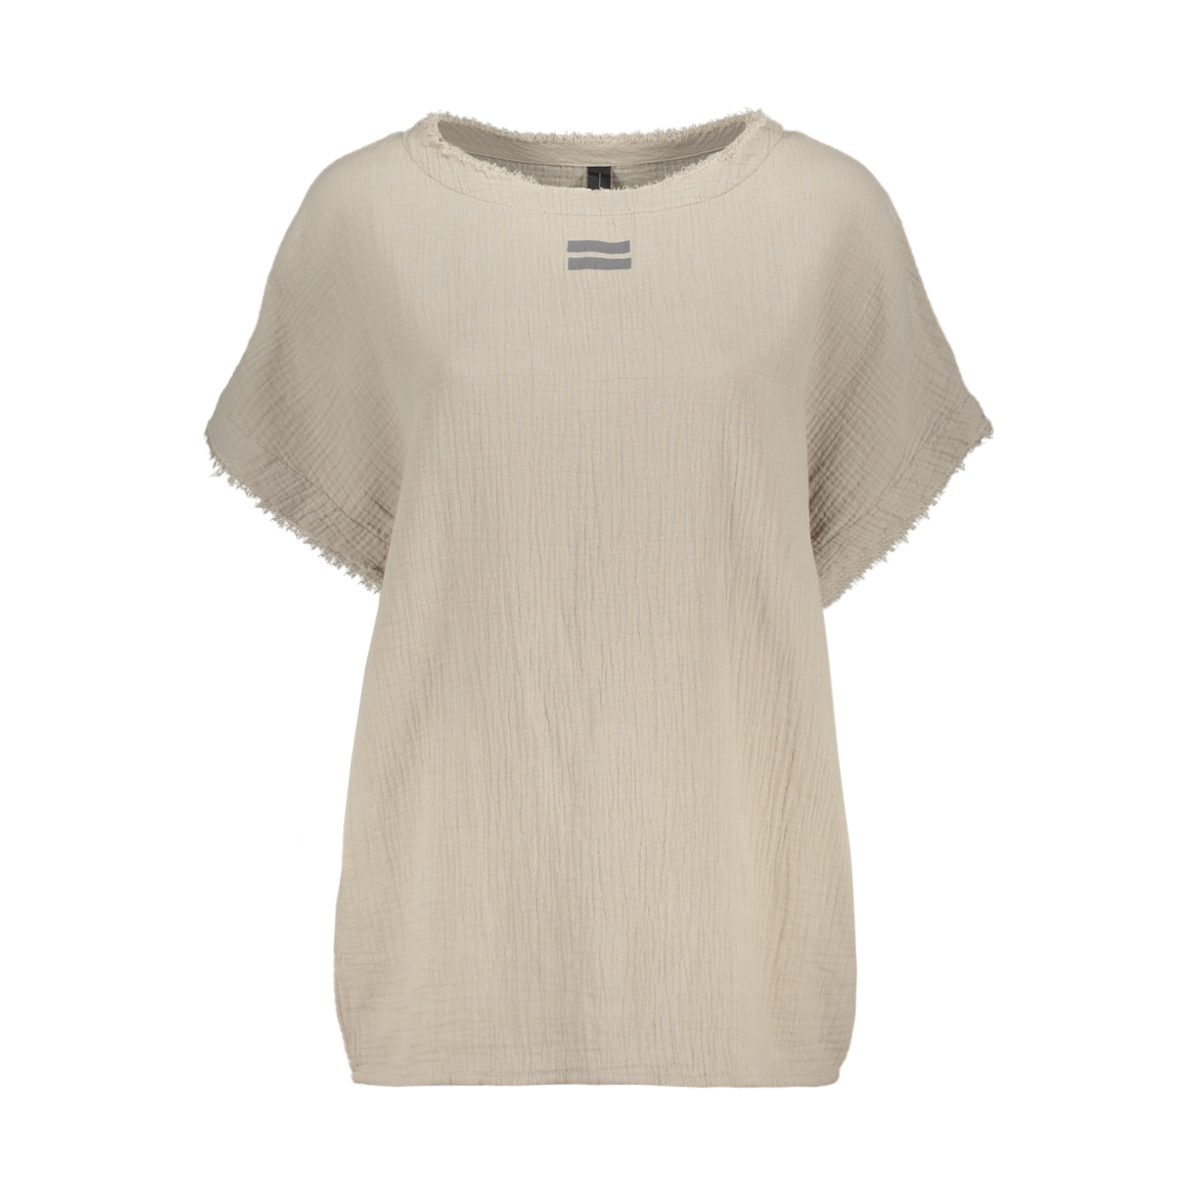 top waffle 20 458 0201 10 days t-shirt clay